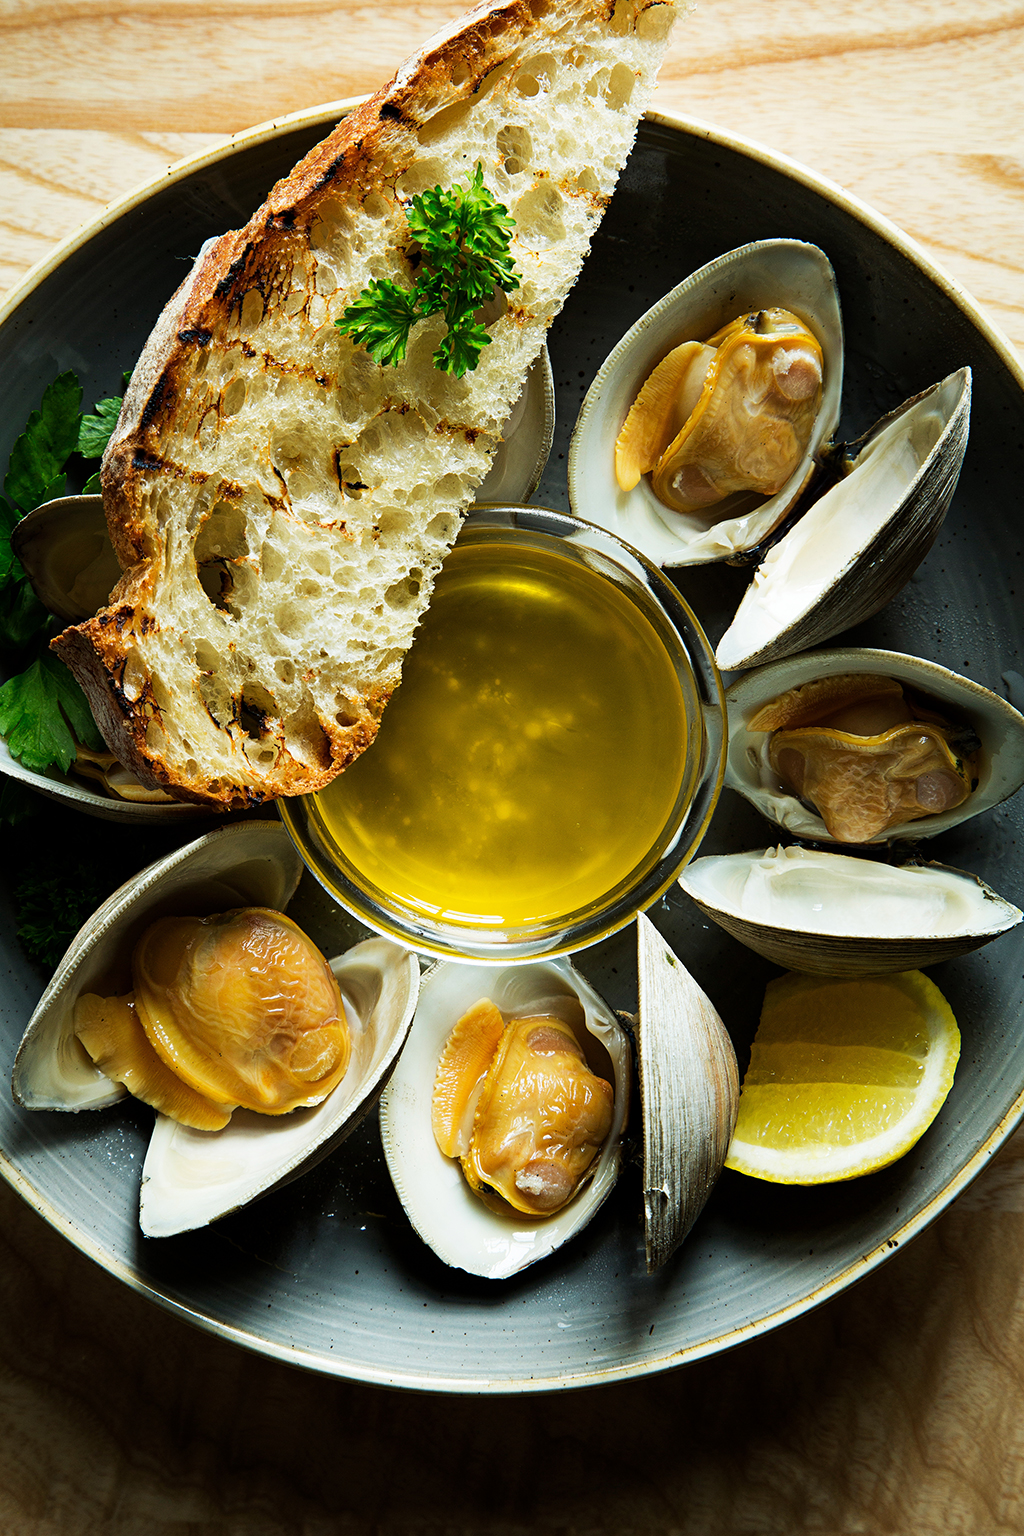 Steamed clams with butter. Photograph by Scott Suchman.